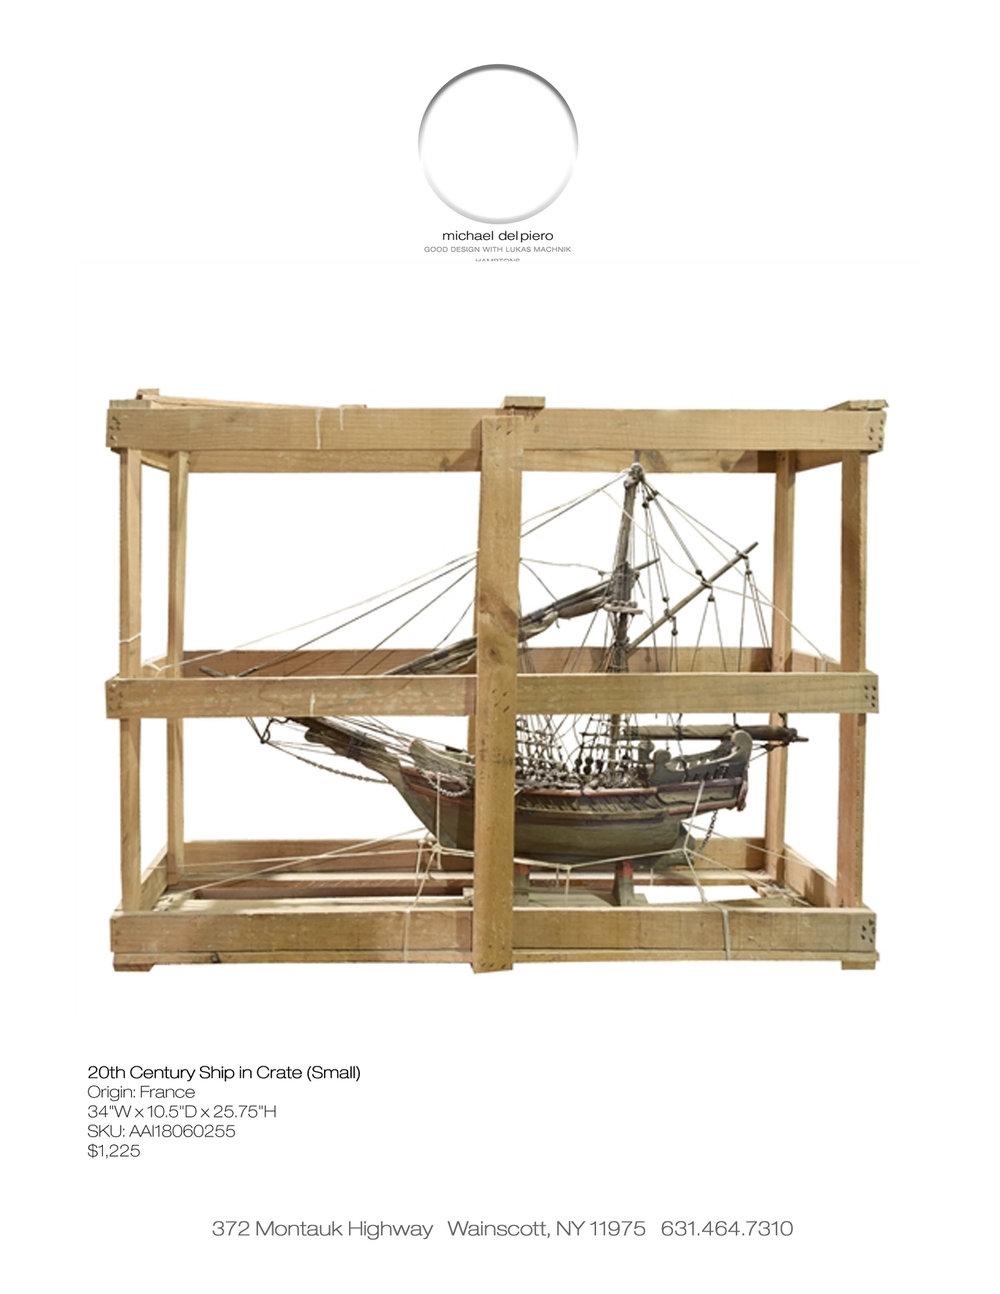 AAI18060255 20th Century Ship in Crate (Small).jpg